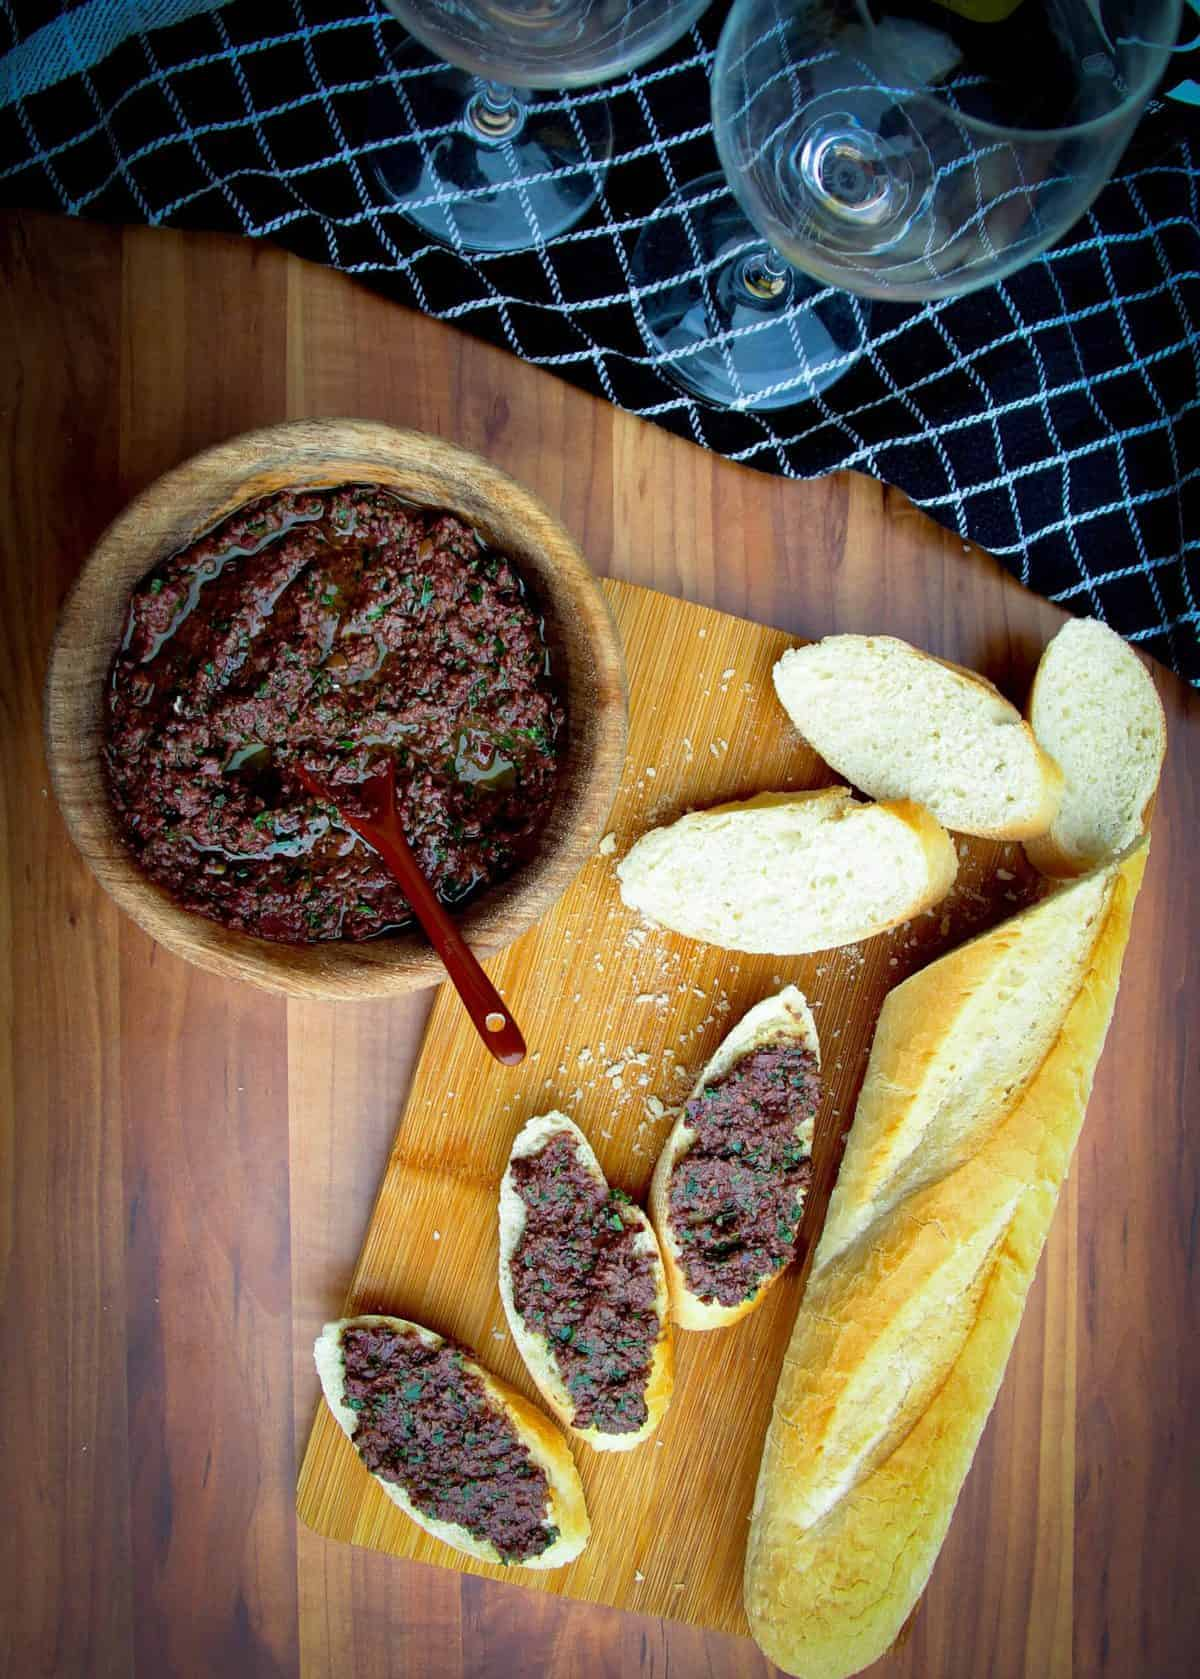 Olive tapenade in a bowl with a french baguette on the side.